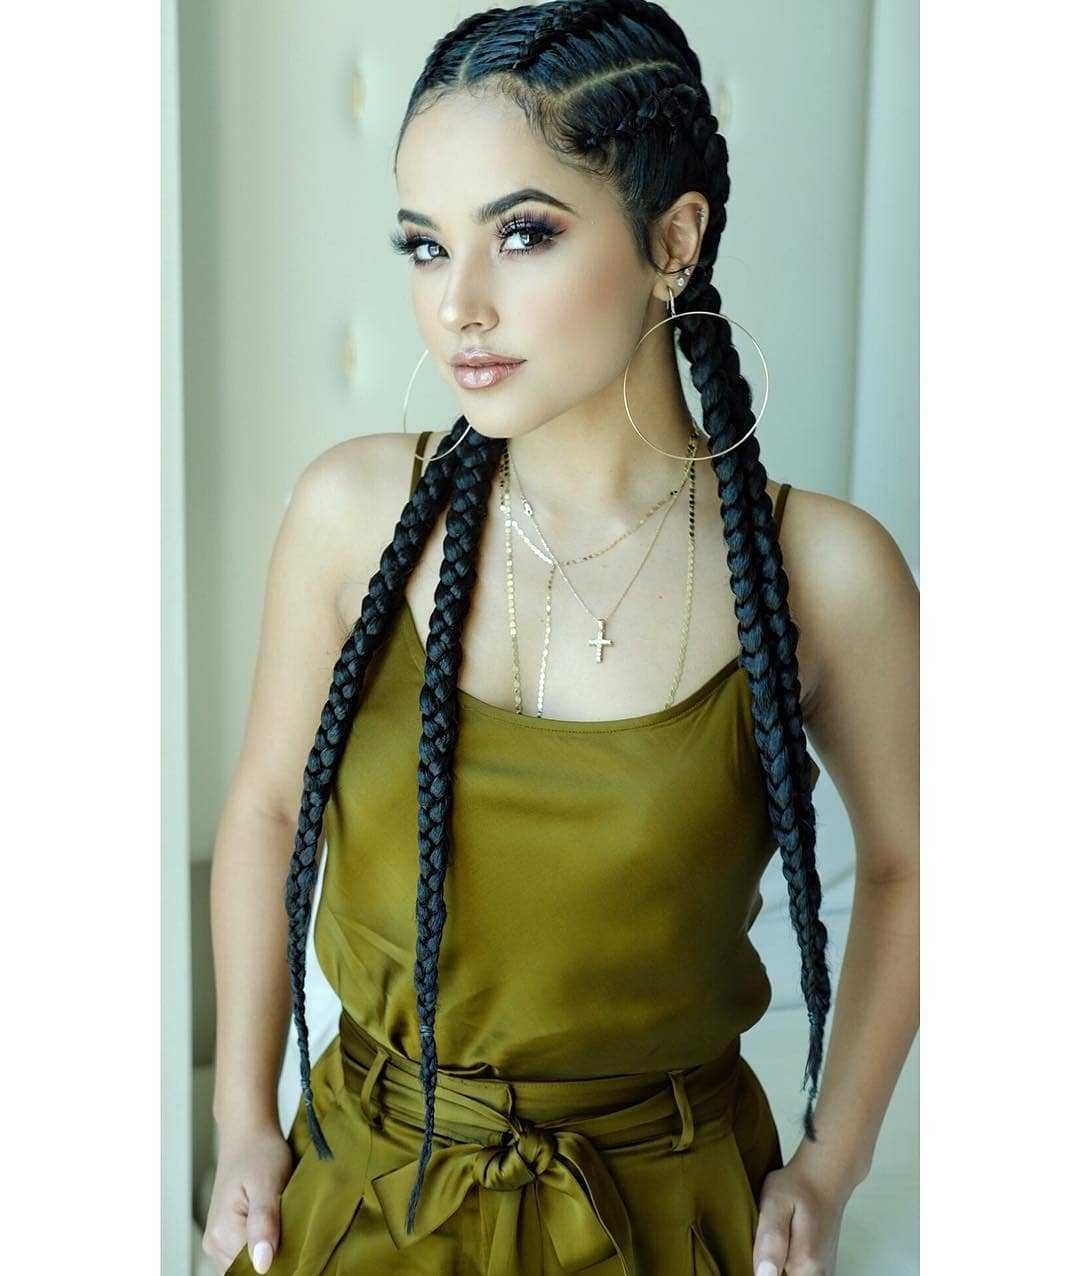 Pin By O C On Becky G In 2019 Becky G Hair Braided